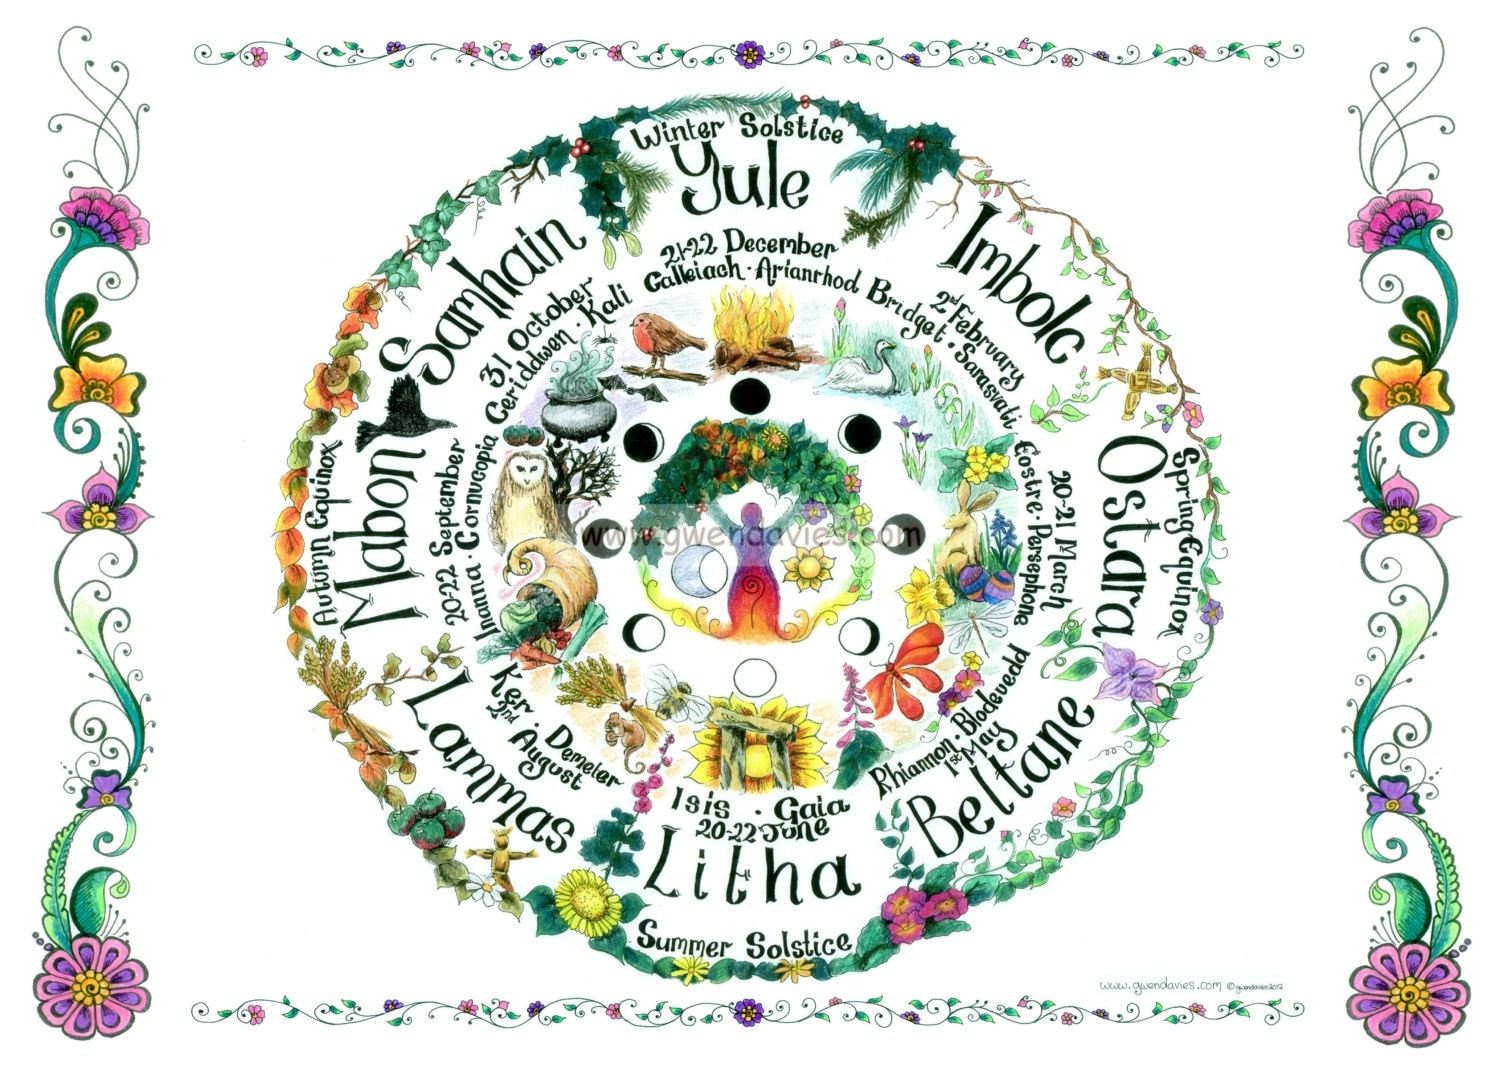 Wheel Of The Year A3 Planner Size Pagan Goddess Wall Art Image